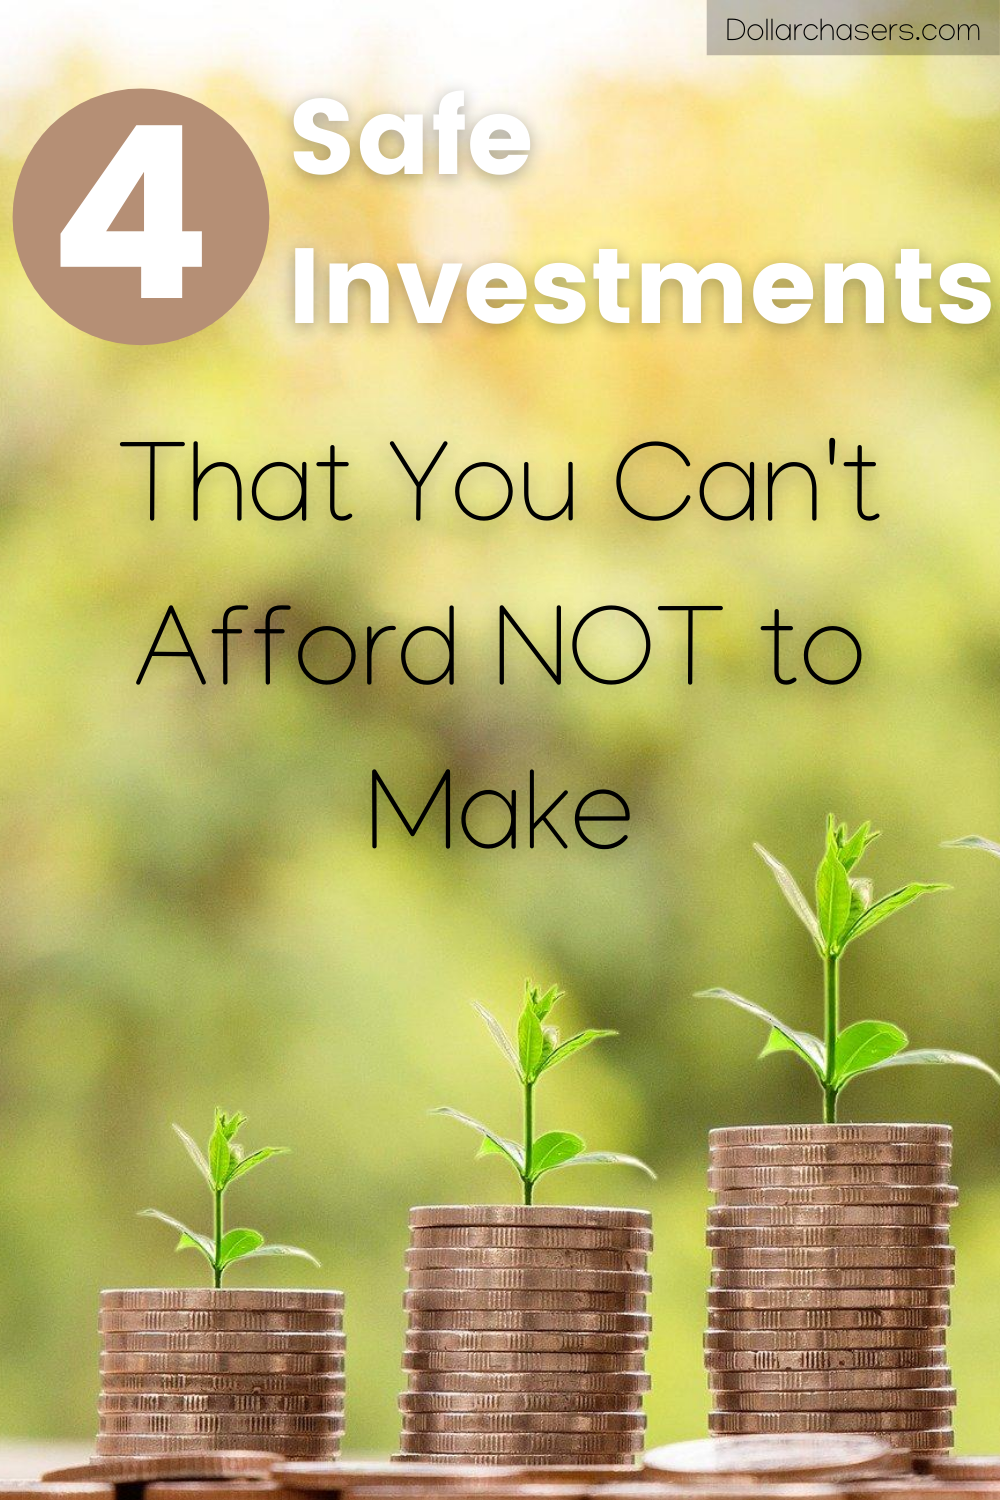 Safest investments to make money silver grove investments